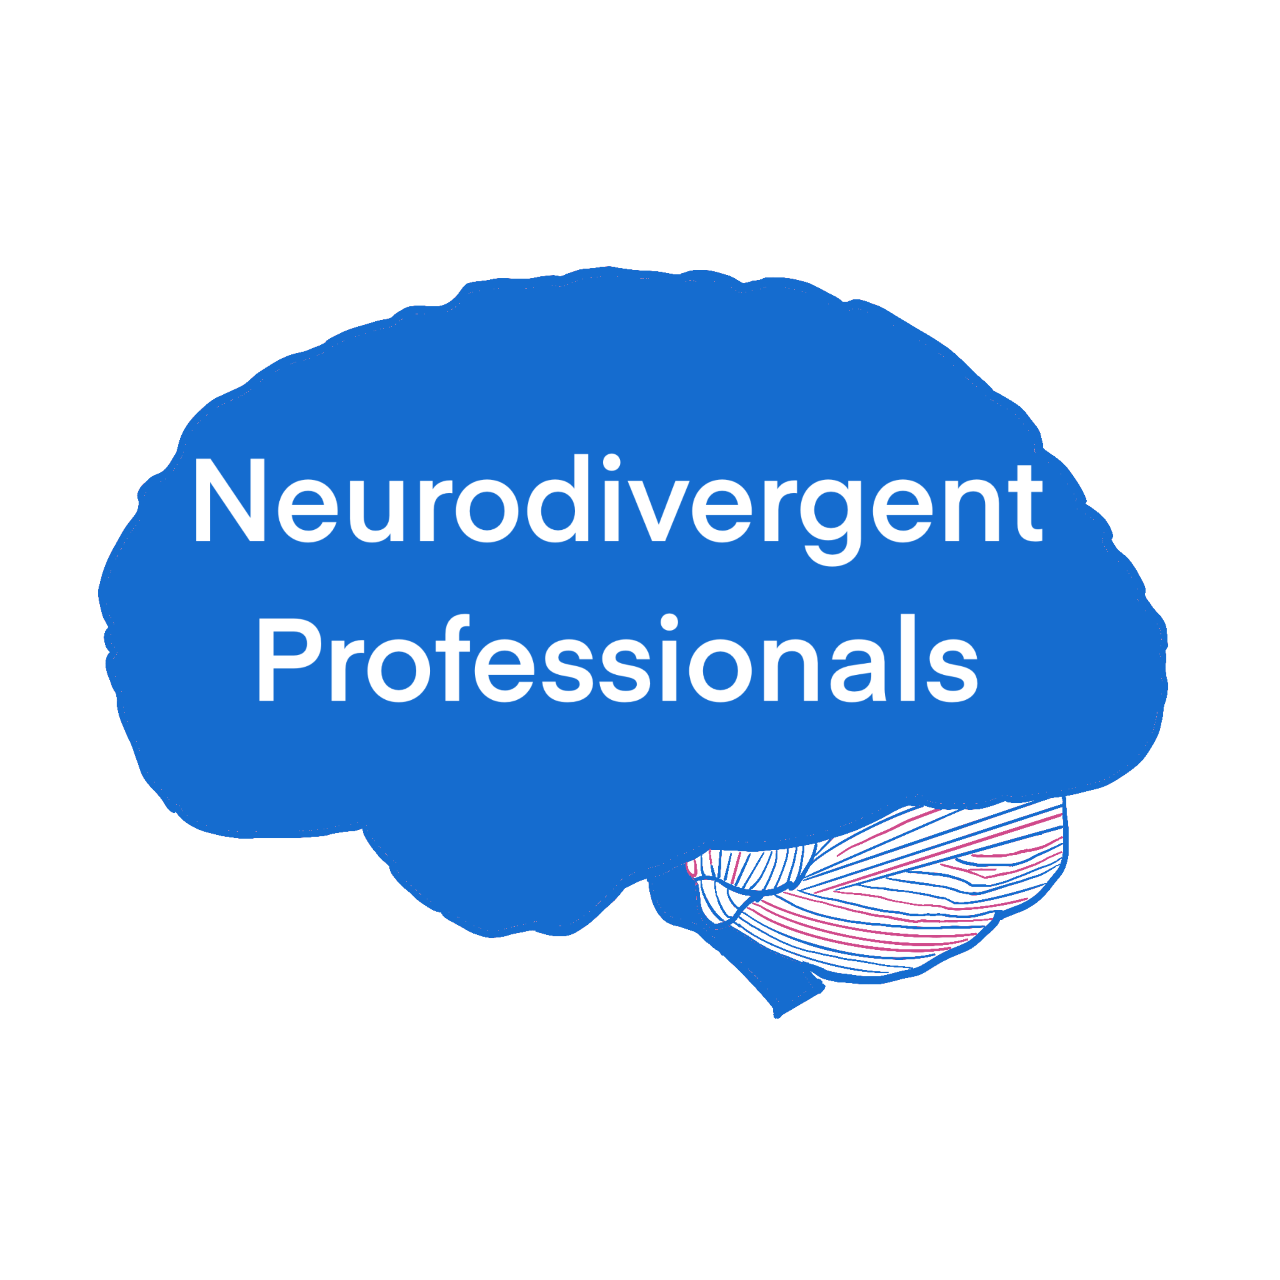 Image of an outline of a brain, coloured in blue with the words 'Neurodivergent professionals' written on it.